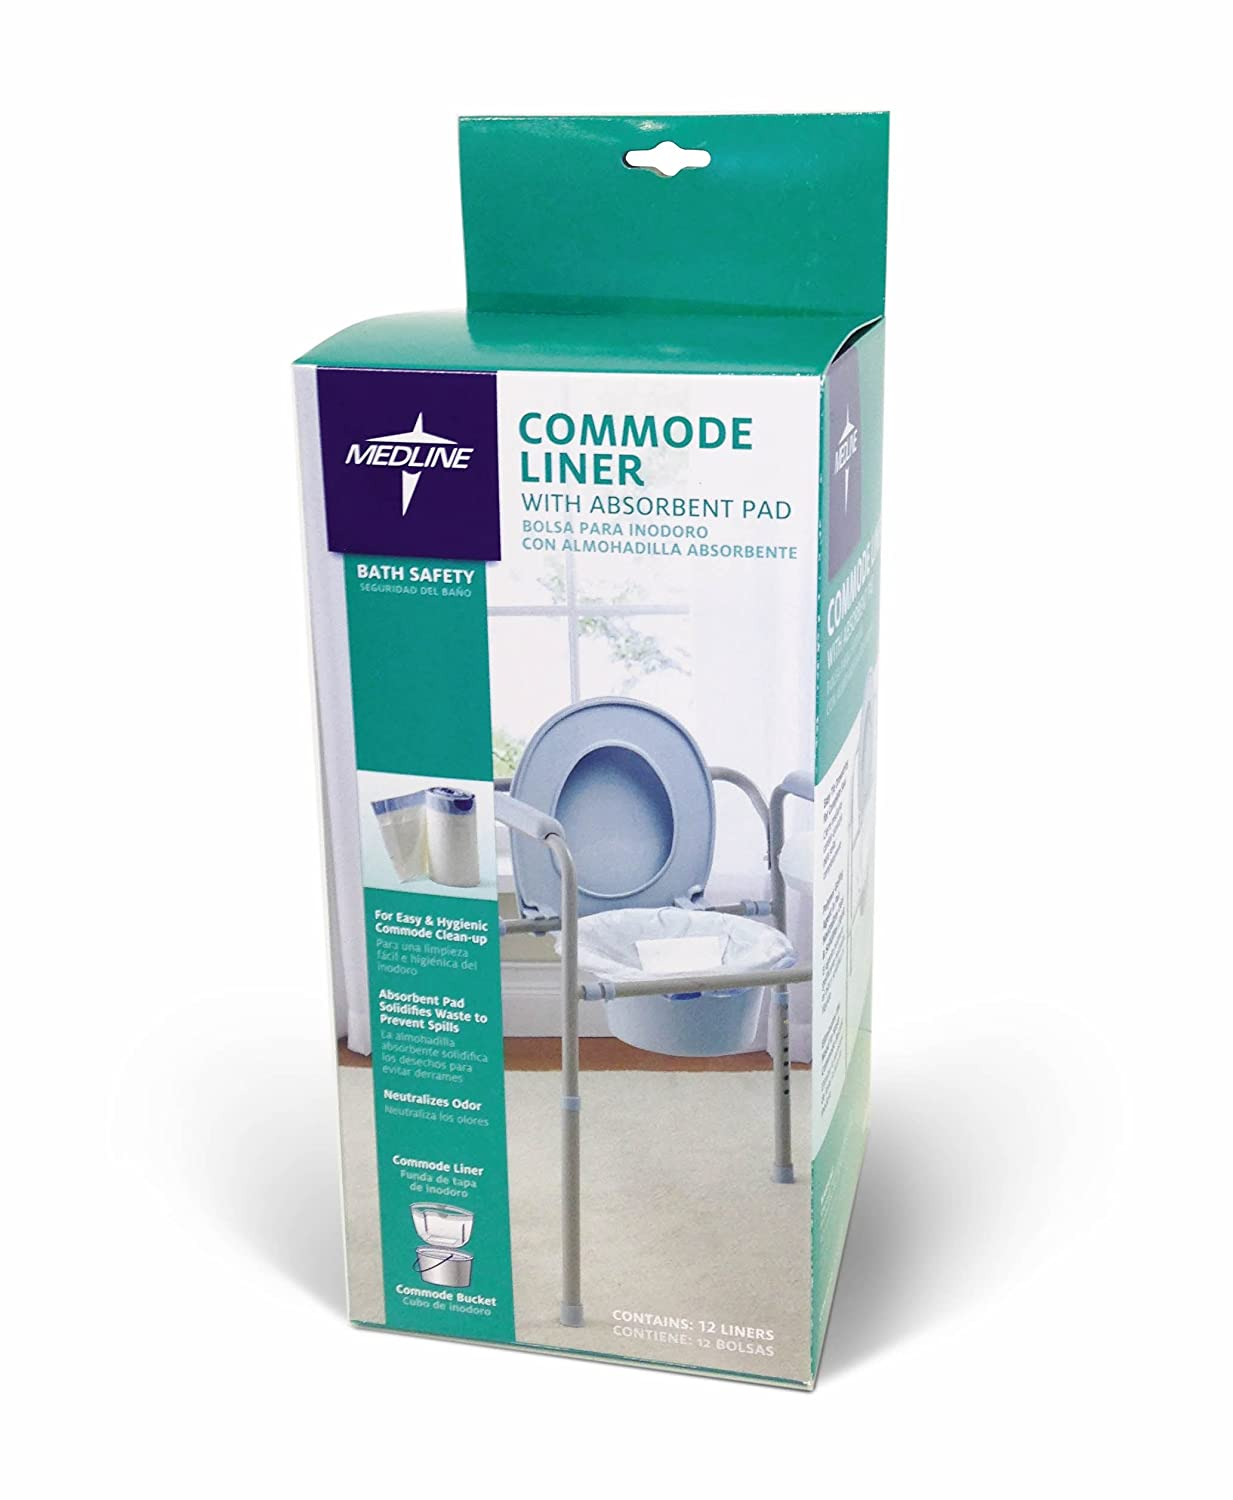 Medline Commode Liners with Absorbent Pads (Pack of 72), Perfect for use in Any Bedside Commode